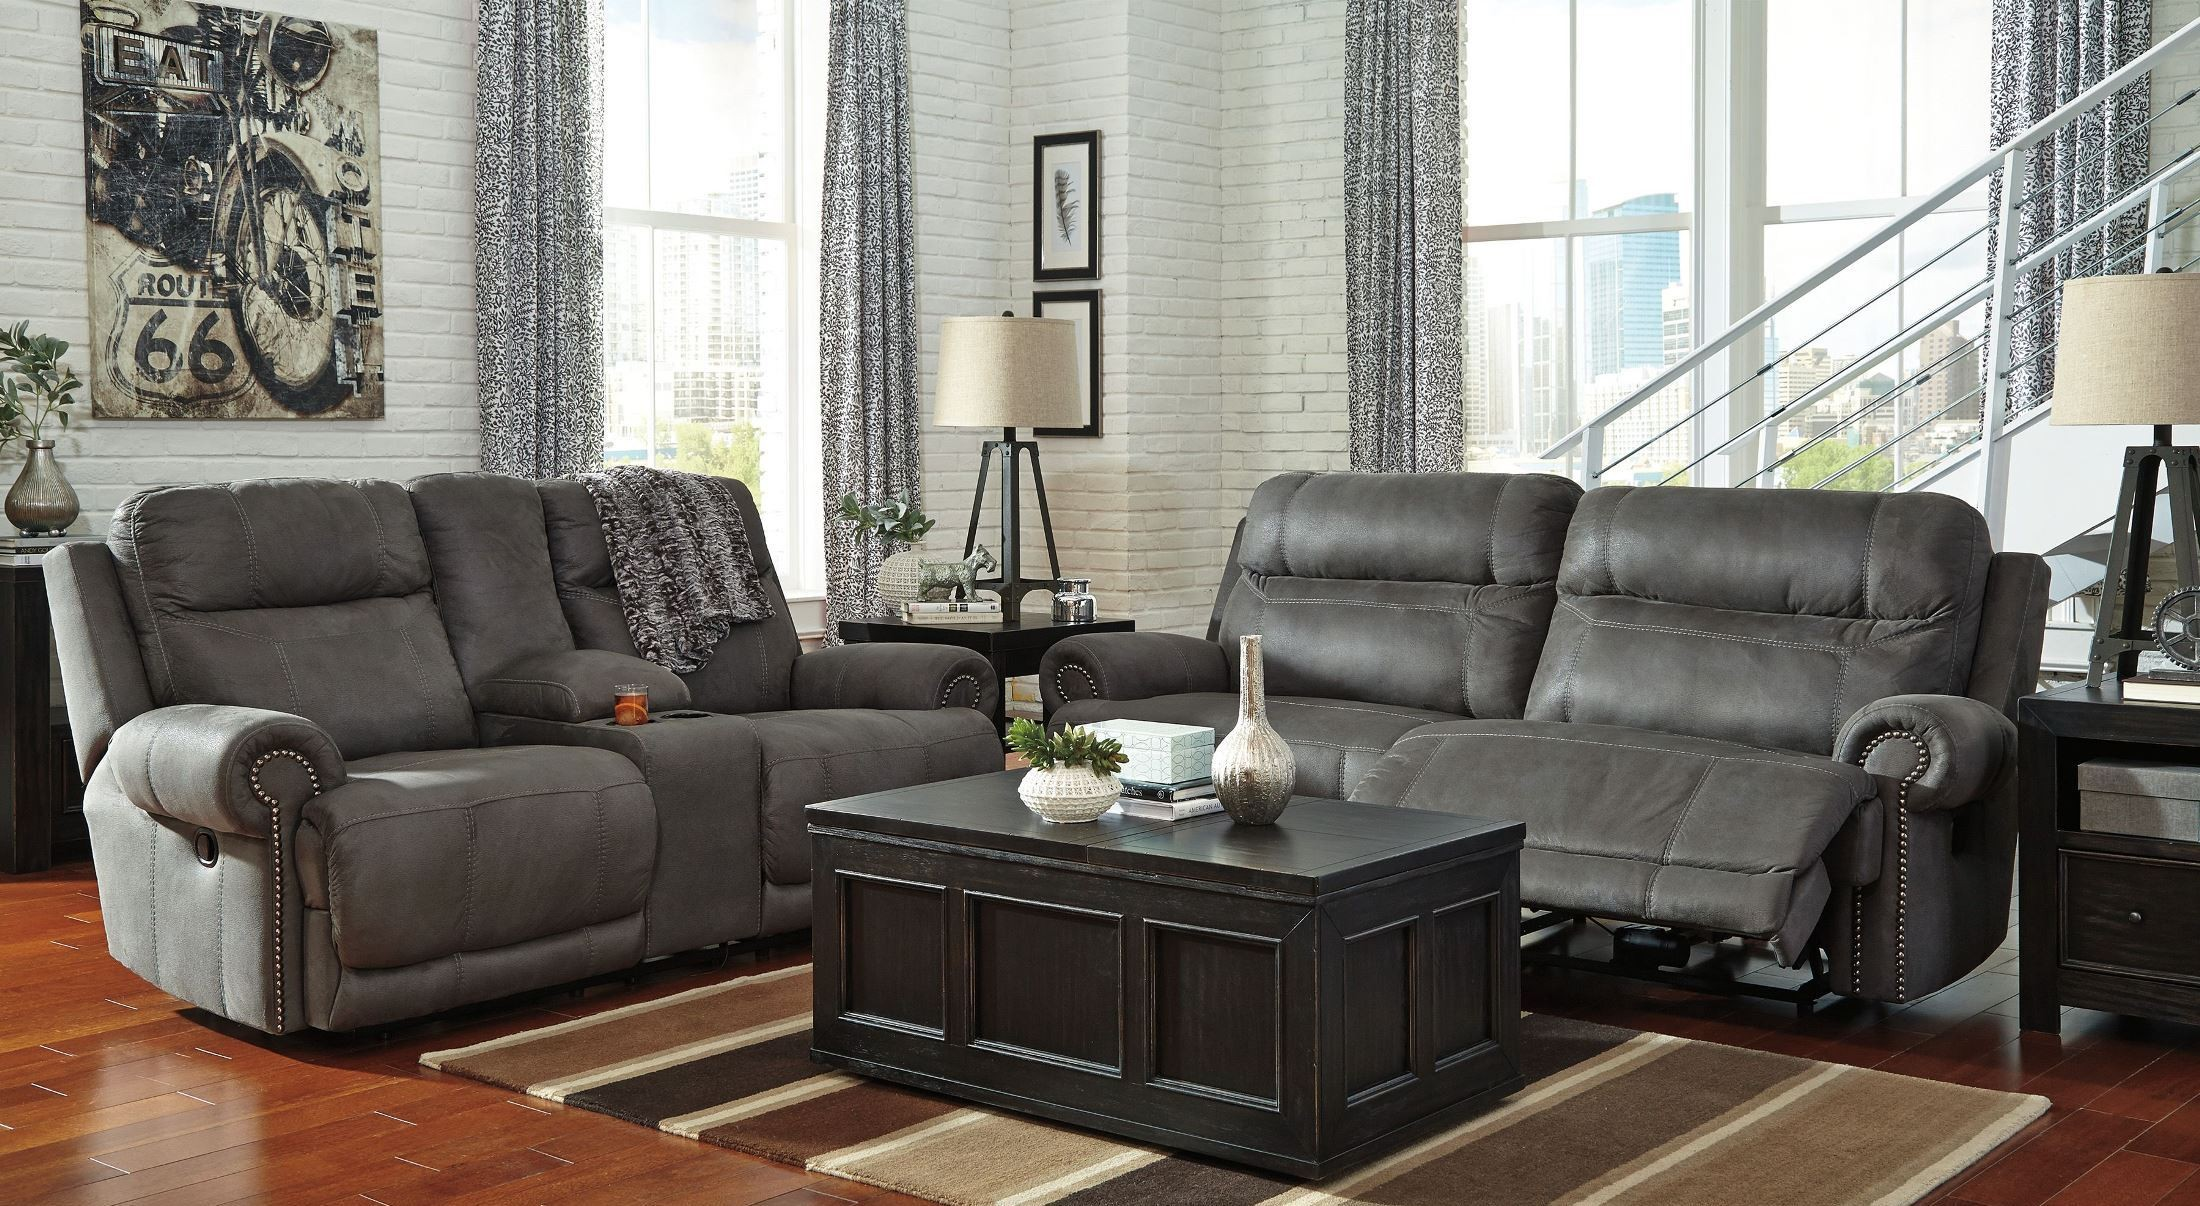 Austere Gray Reclining Living Room Set From Ashley